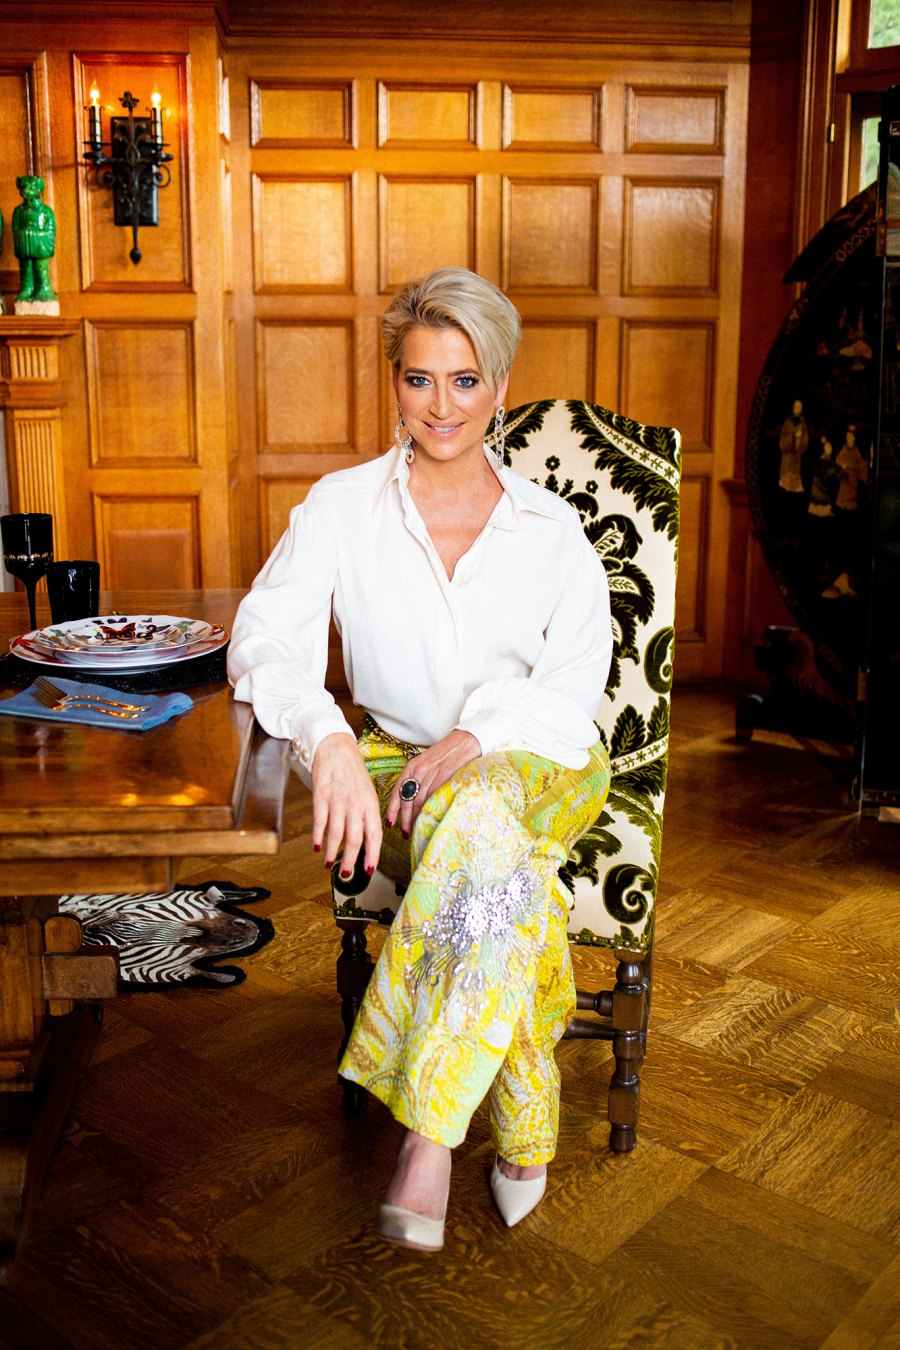 Dining Room Dorinda Medley Alexandra Arnold Real Housewives of New York's Dorinda Medley Is Renting Out Her 18-Acres Blue Stone Manor